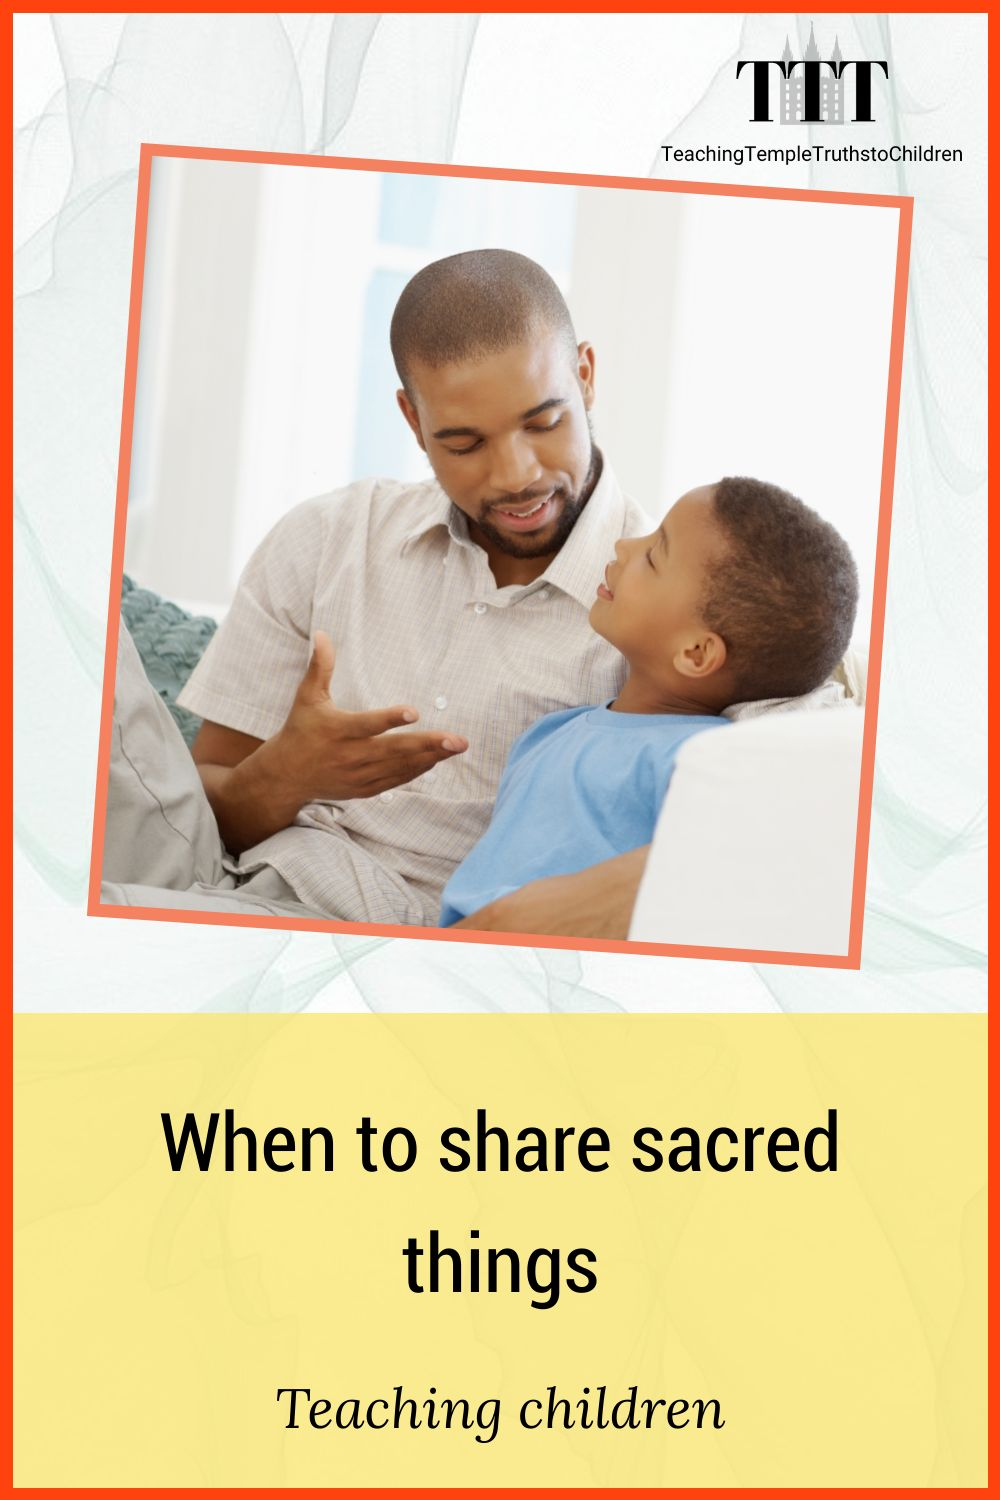 How to teach your children when to share sacred things